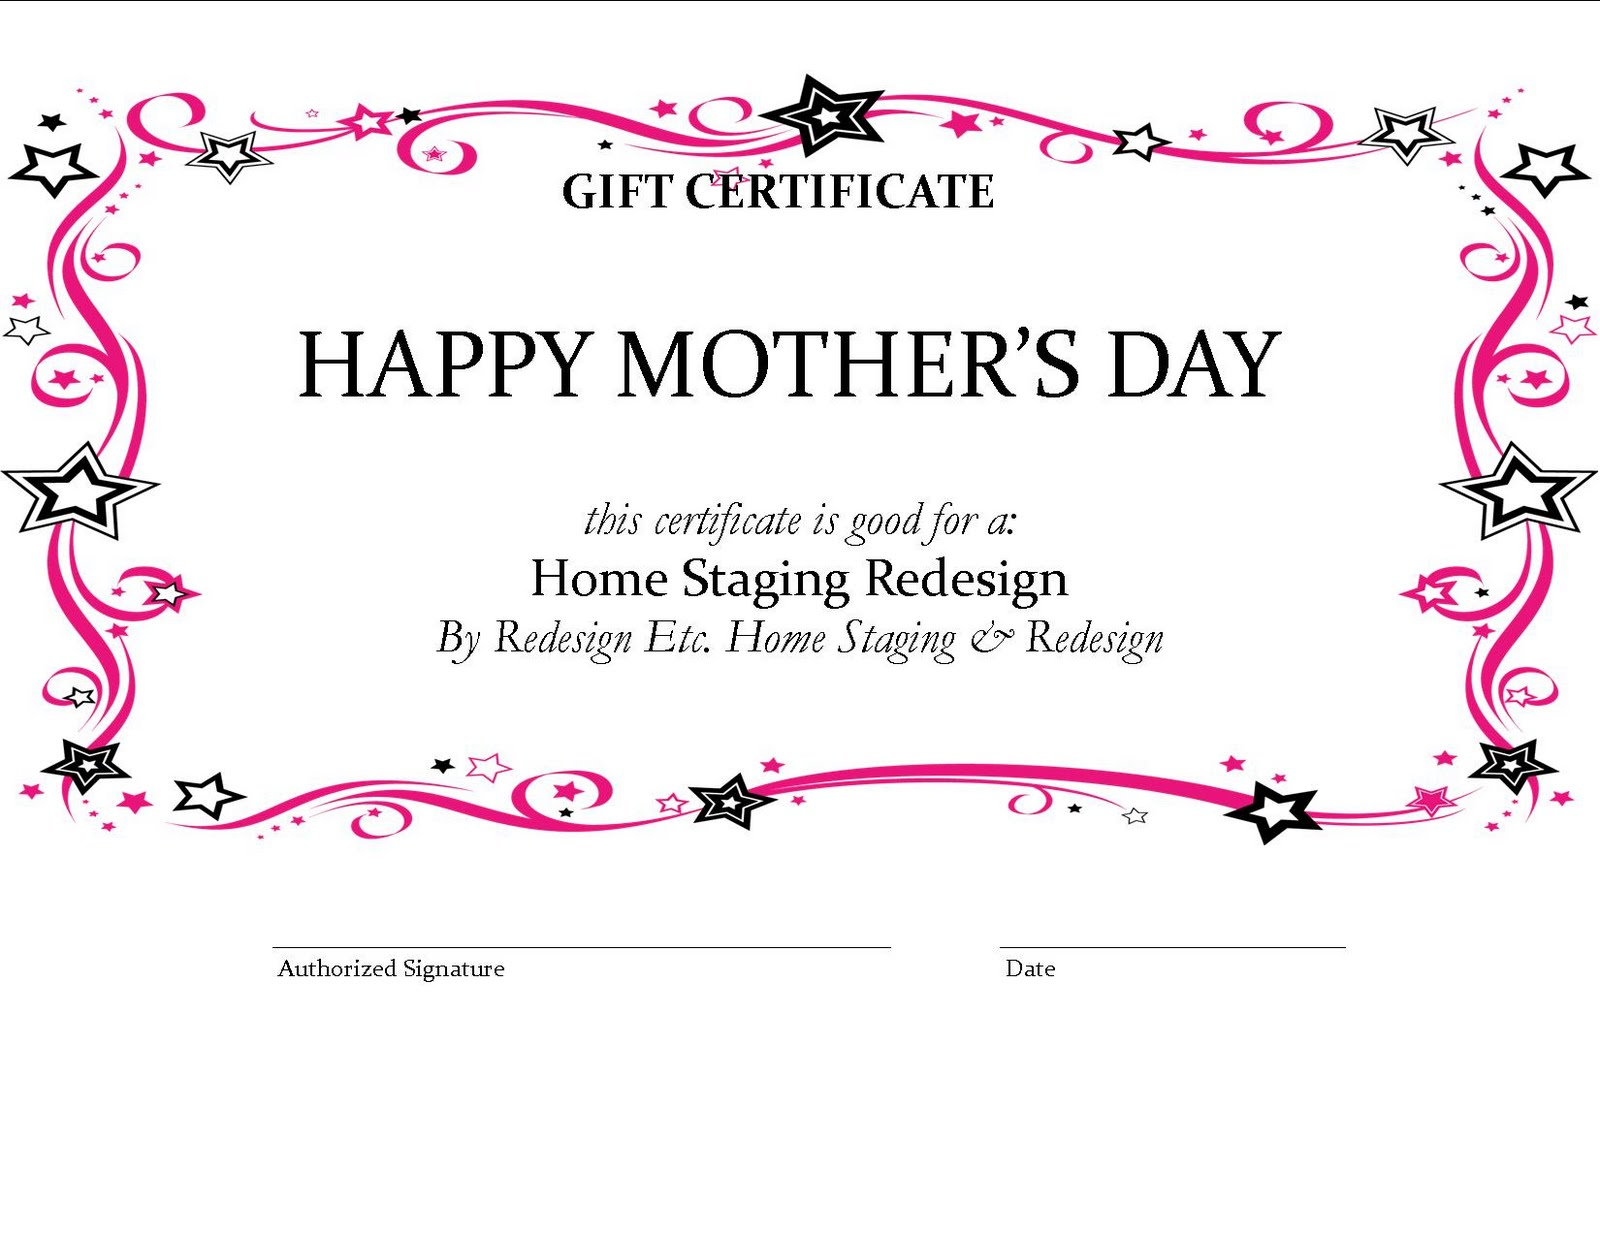 Beauty gift certificate template free gallery templates example certificate template free alramifo home staging blog of houston by redesign etc home staging home staging redesign mothers day gift alramifo Images